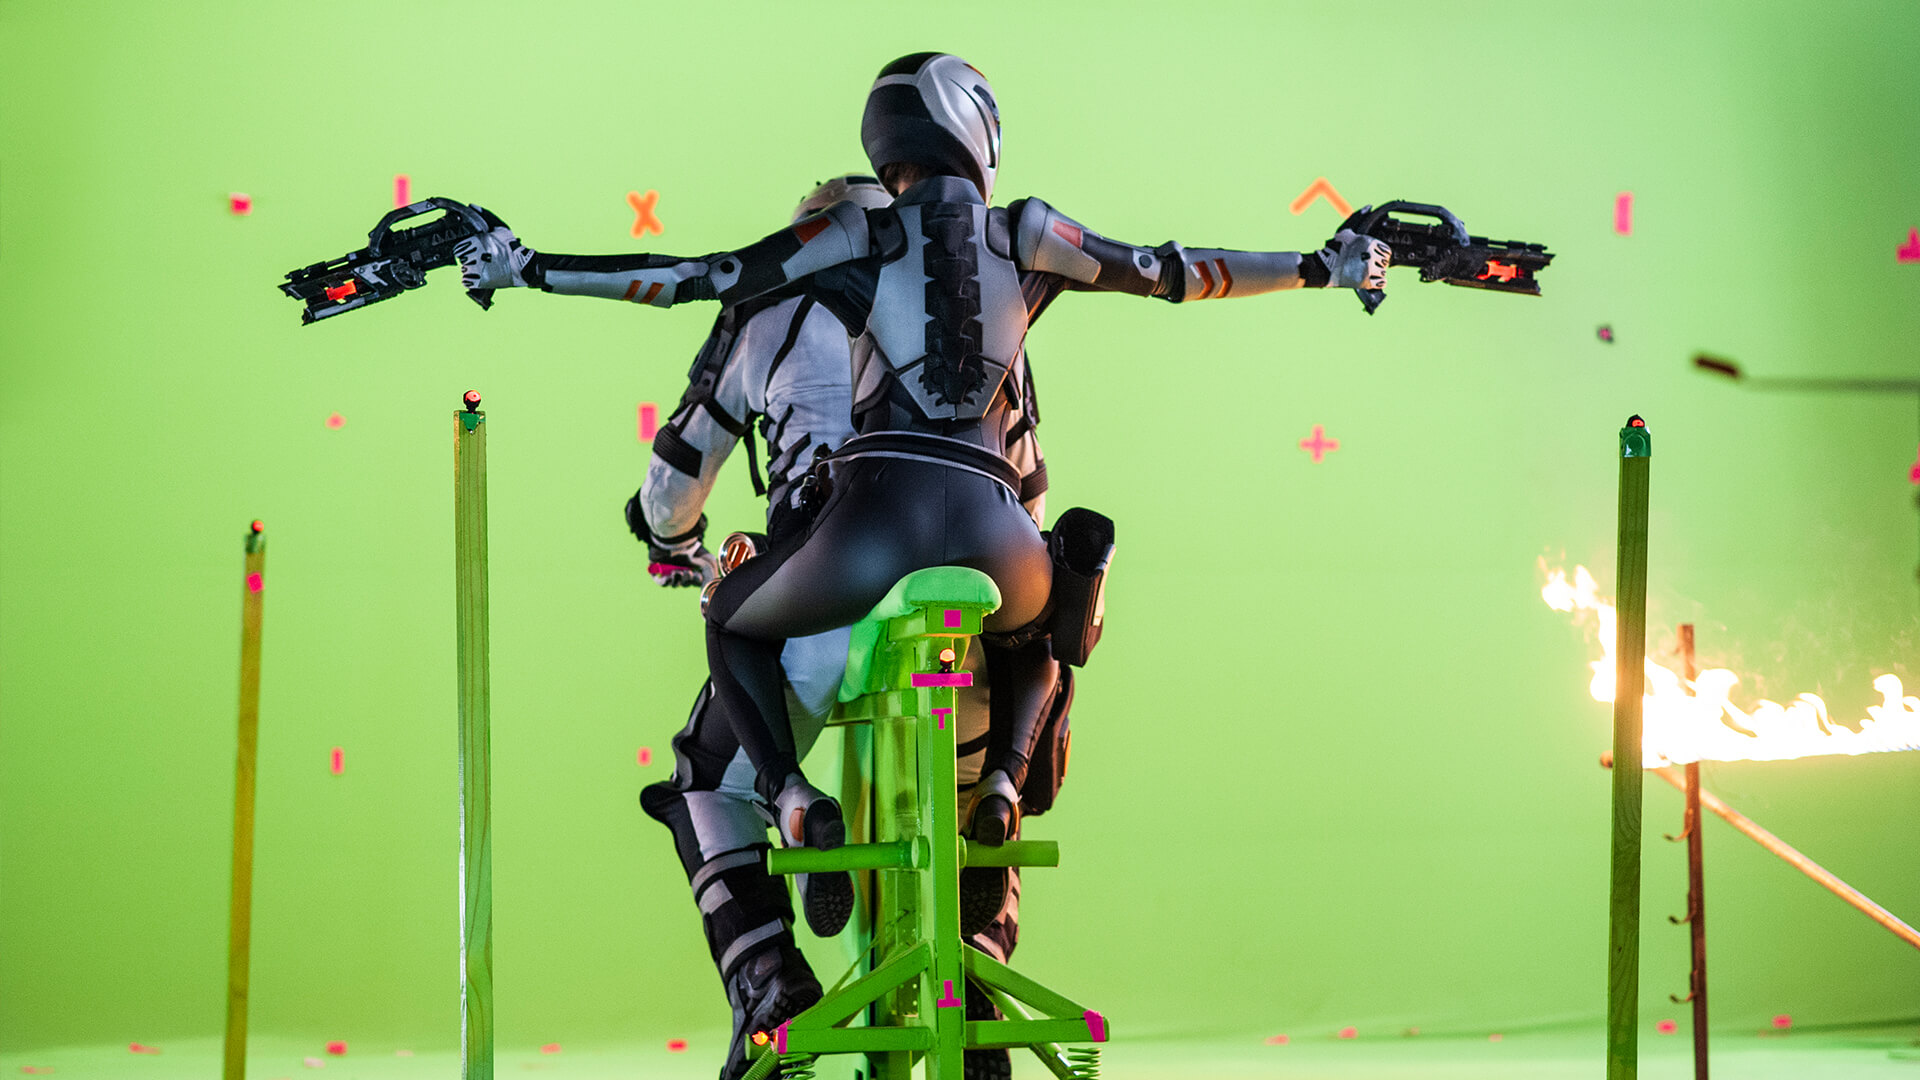 Woman holding guns on a motorcycle in front of a greenscreen, for the movie Ultimate Energy